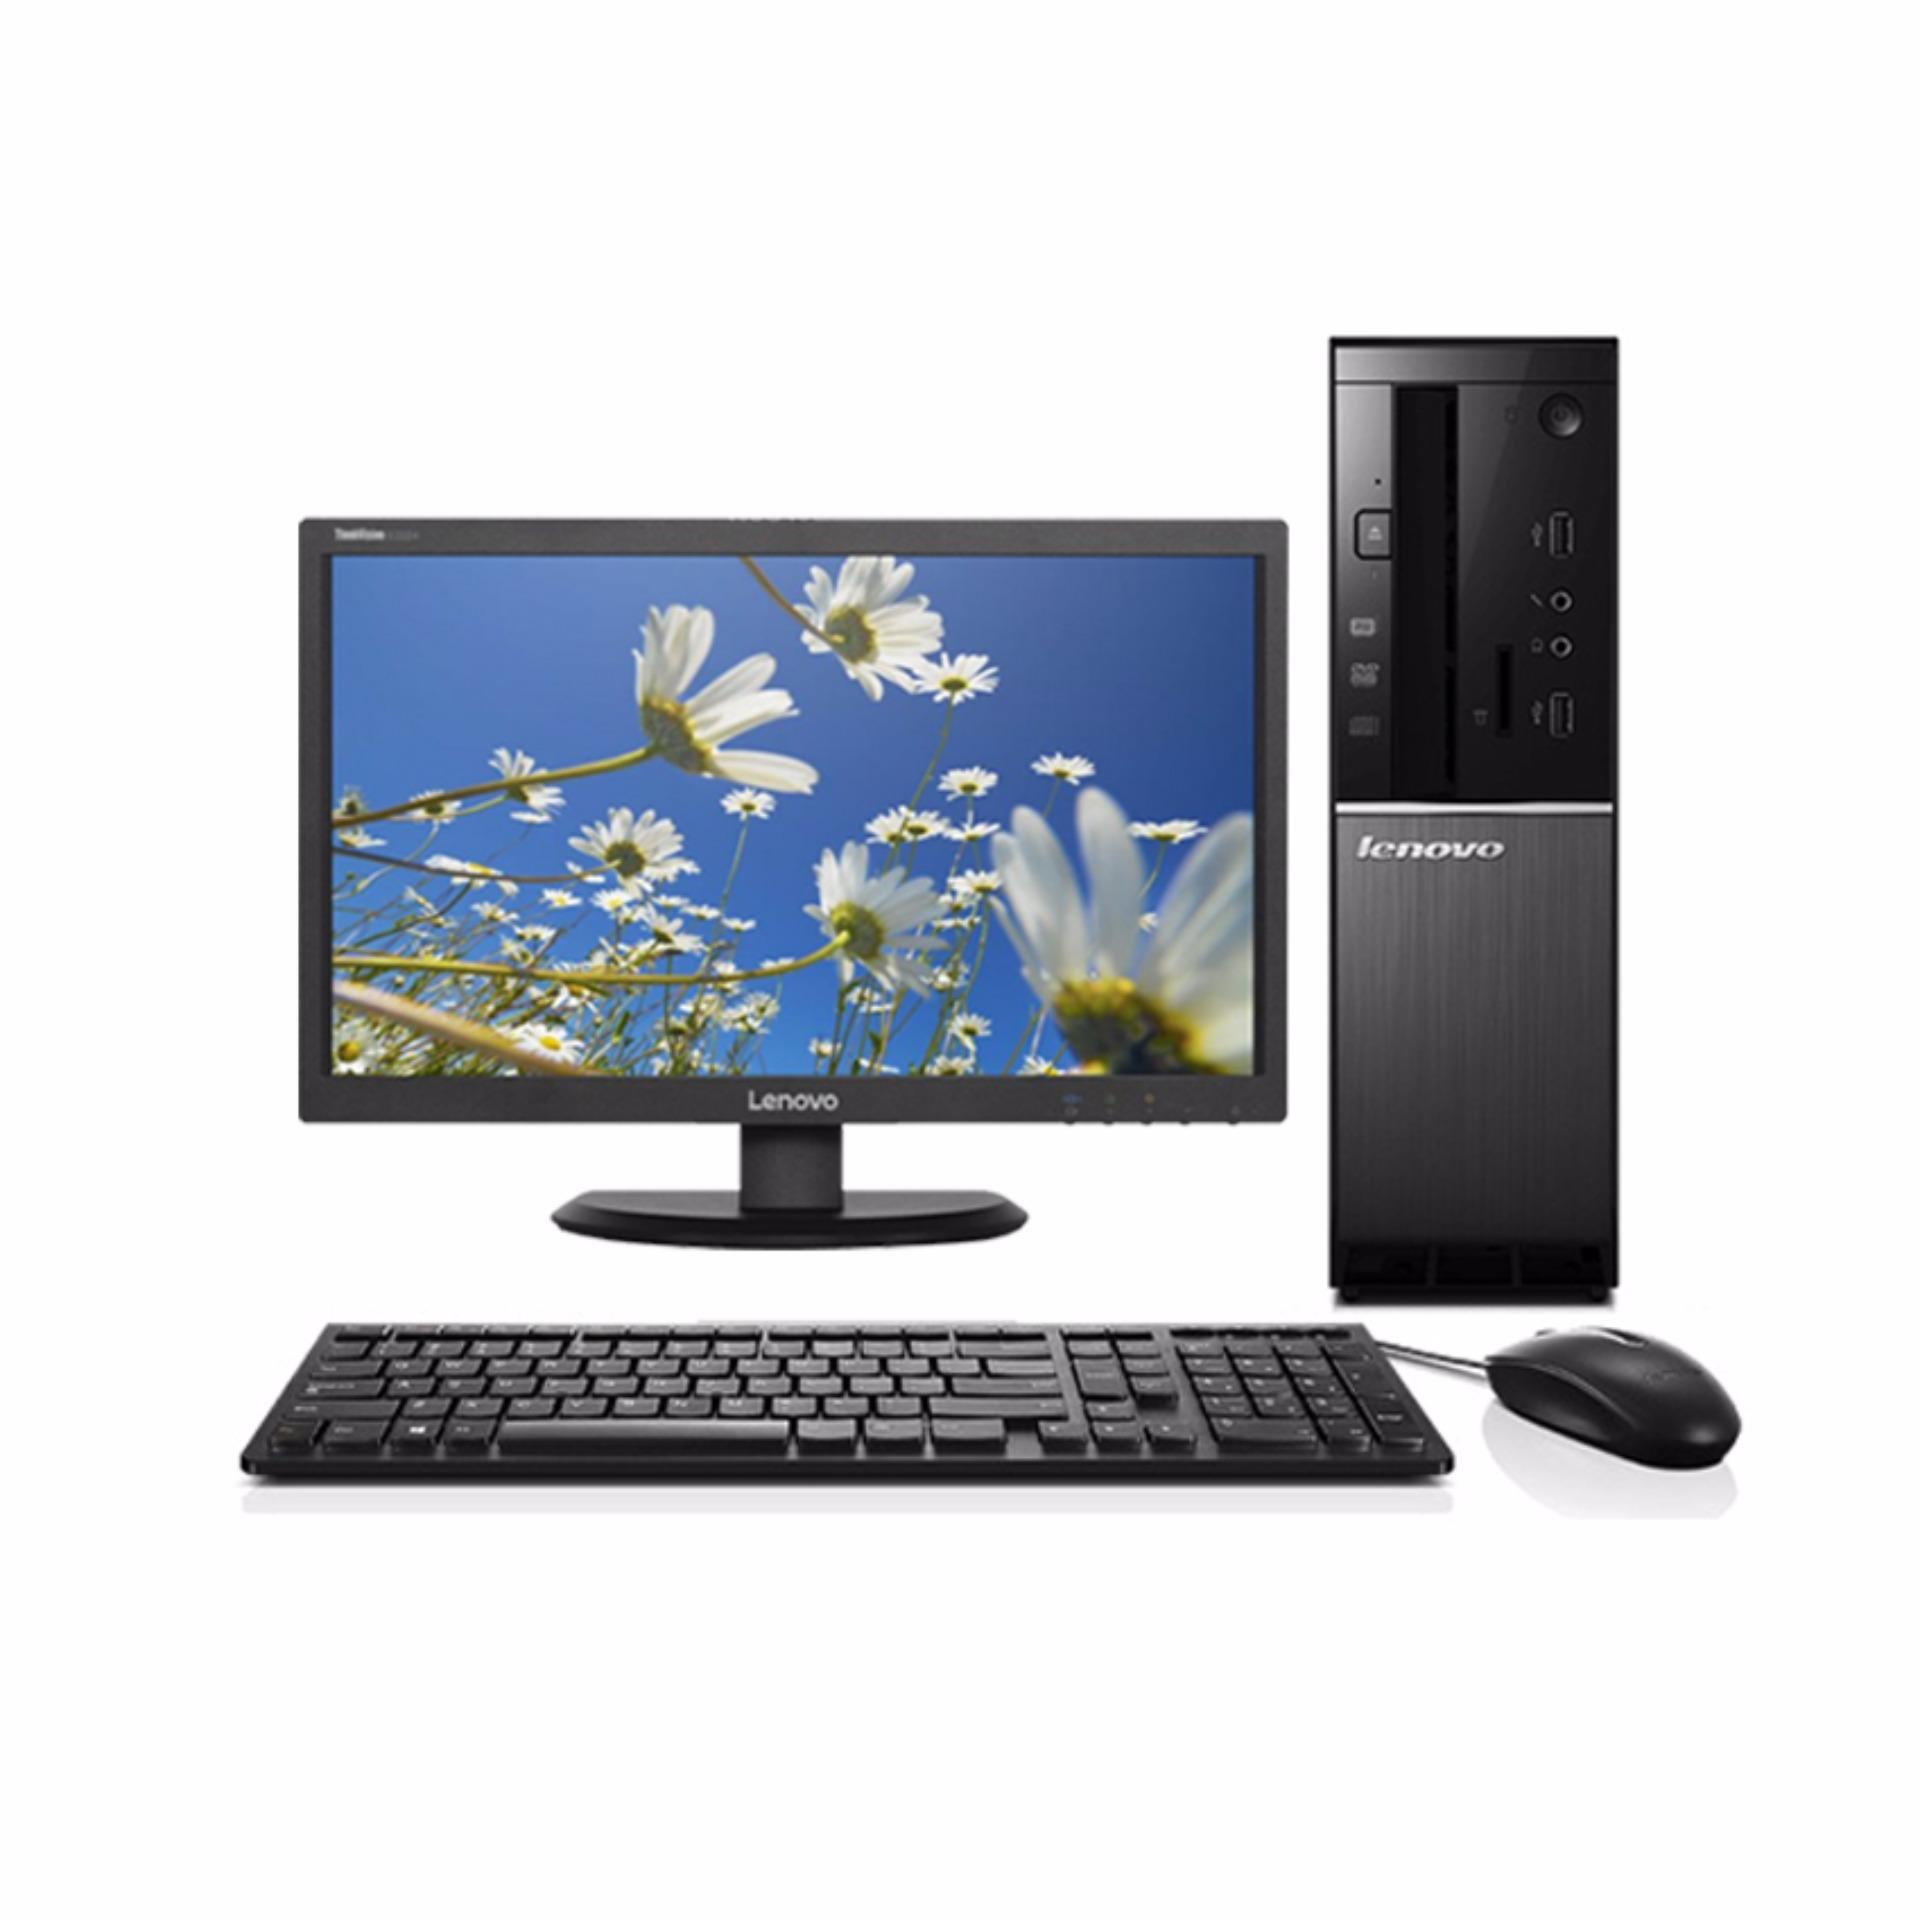 Lenovo Pc Ideacentre 300s 11ibr 69id Intel Celeron J6030 2gb Ram 195 Aio 510 22ish 0fid 4gb Core I5 White Windows